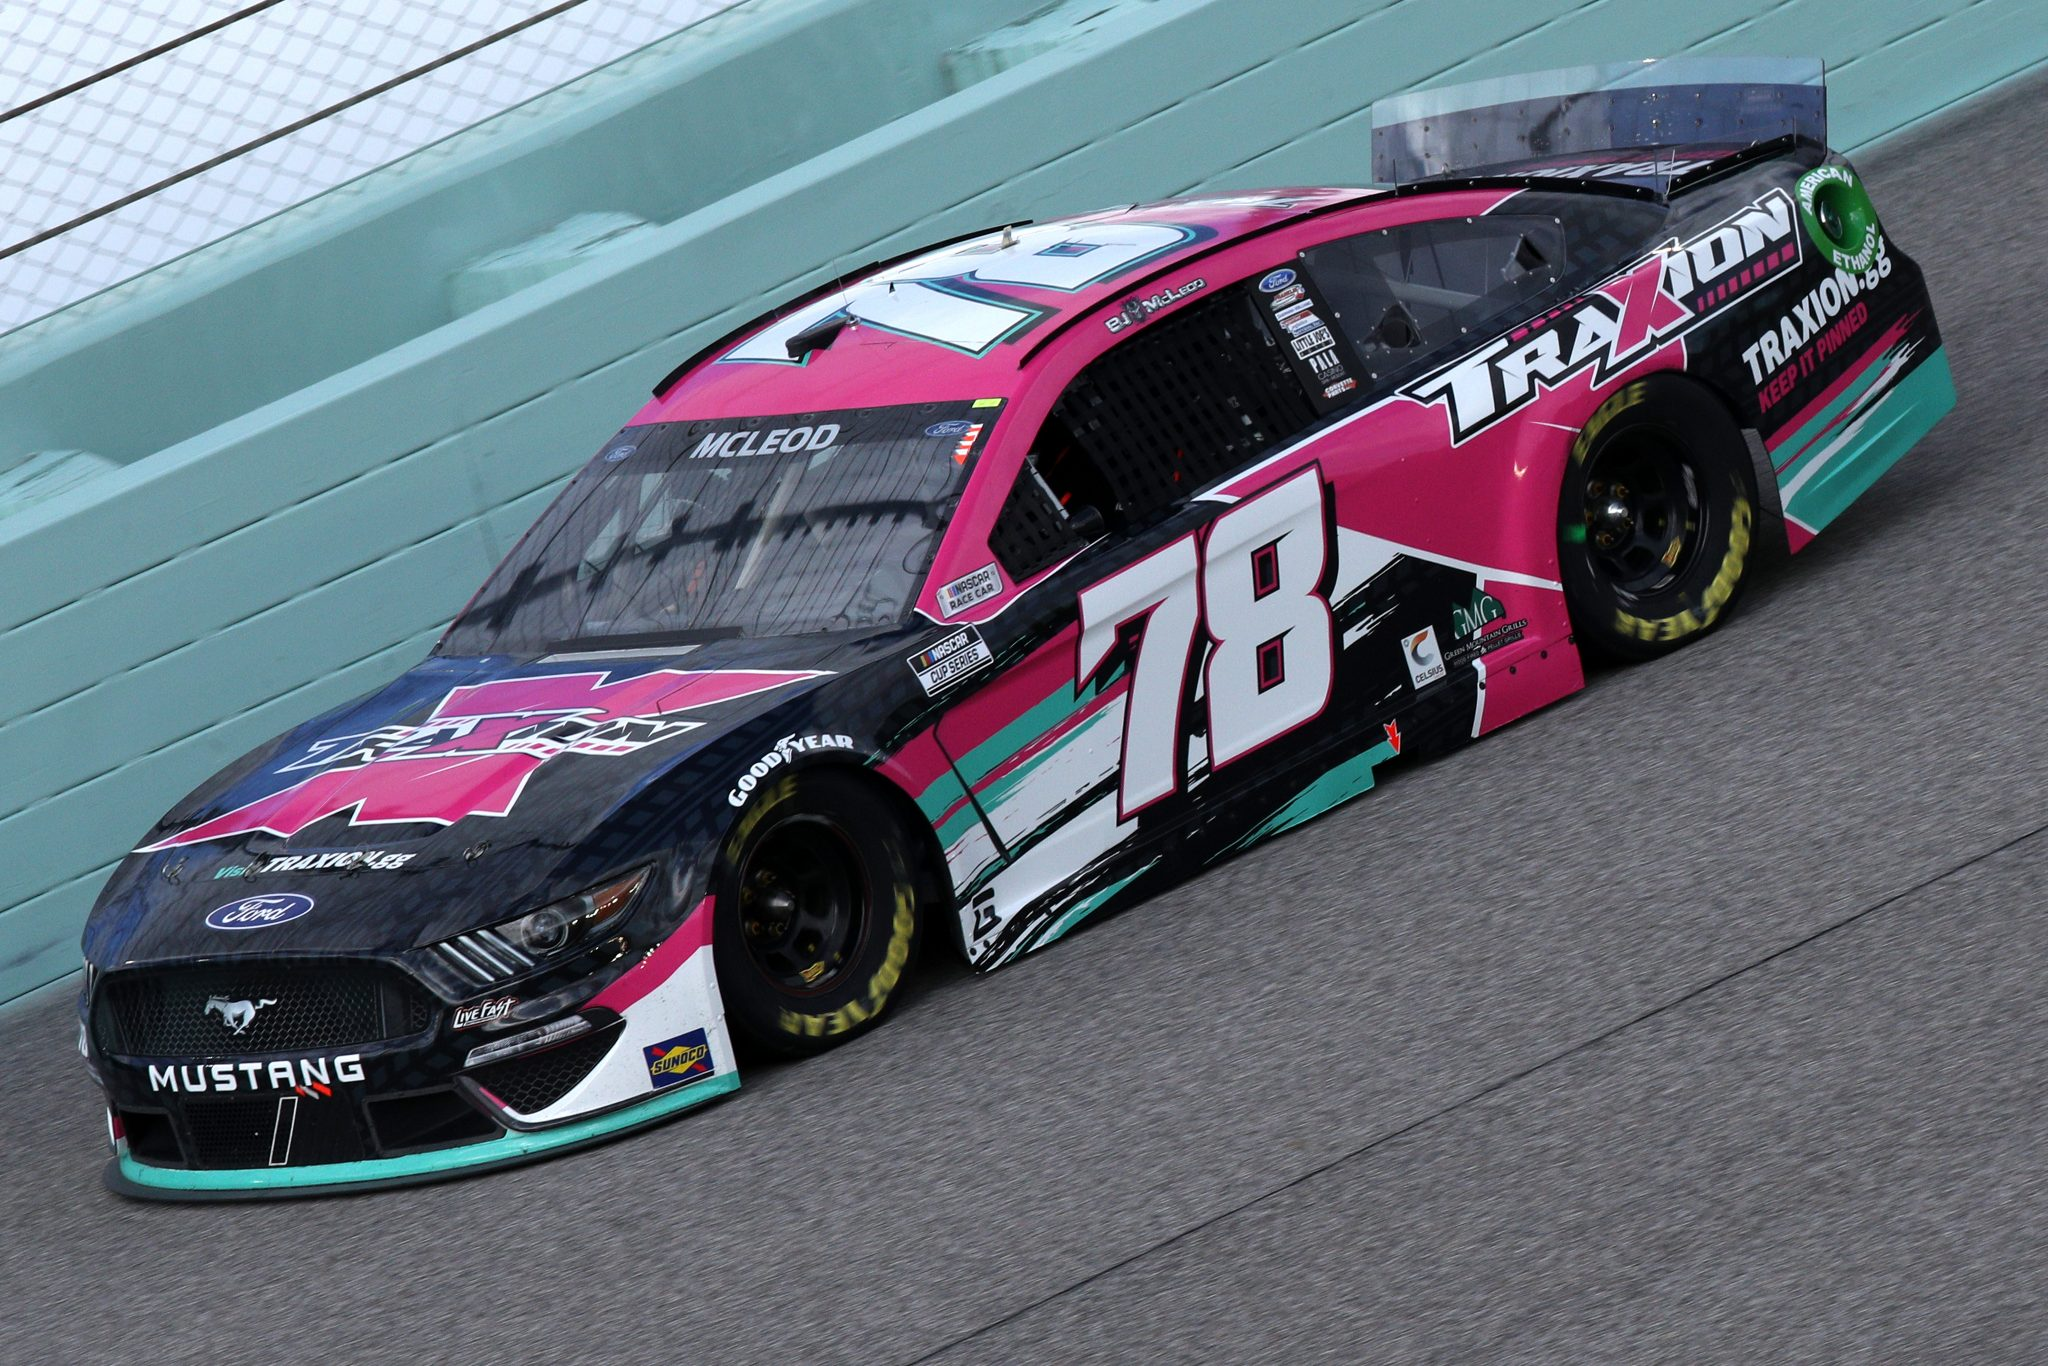 HOMESTEAD, FLORIDA - FEBRUARY 28: BJ McLeod, driver of the #78 Traxion.gg/Motorsport Games Ford, drives during the NASCAR Cup Series Dixie Vodka 400 at Homestead-Miami Speedway on February 28, 2021 in Homestead, Florida. (Photo by Sean Gardner/Getty Images) | Getty Images